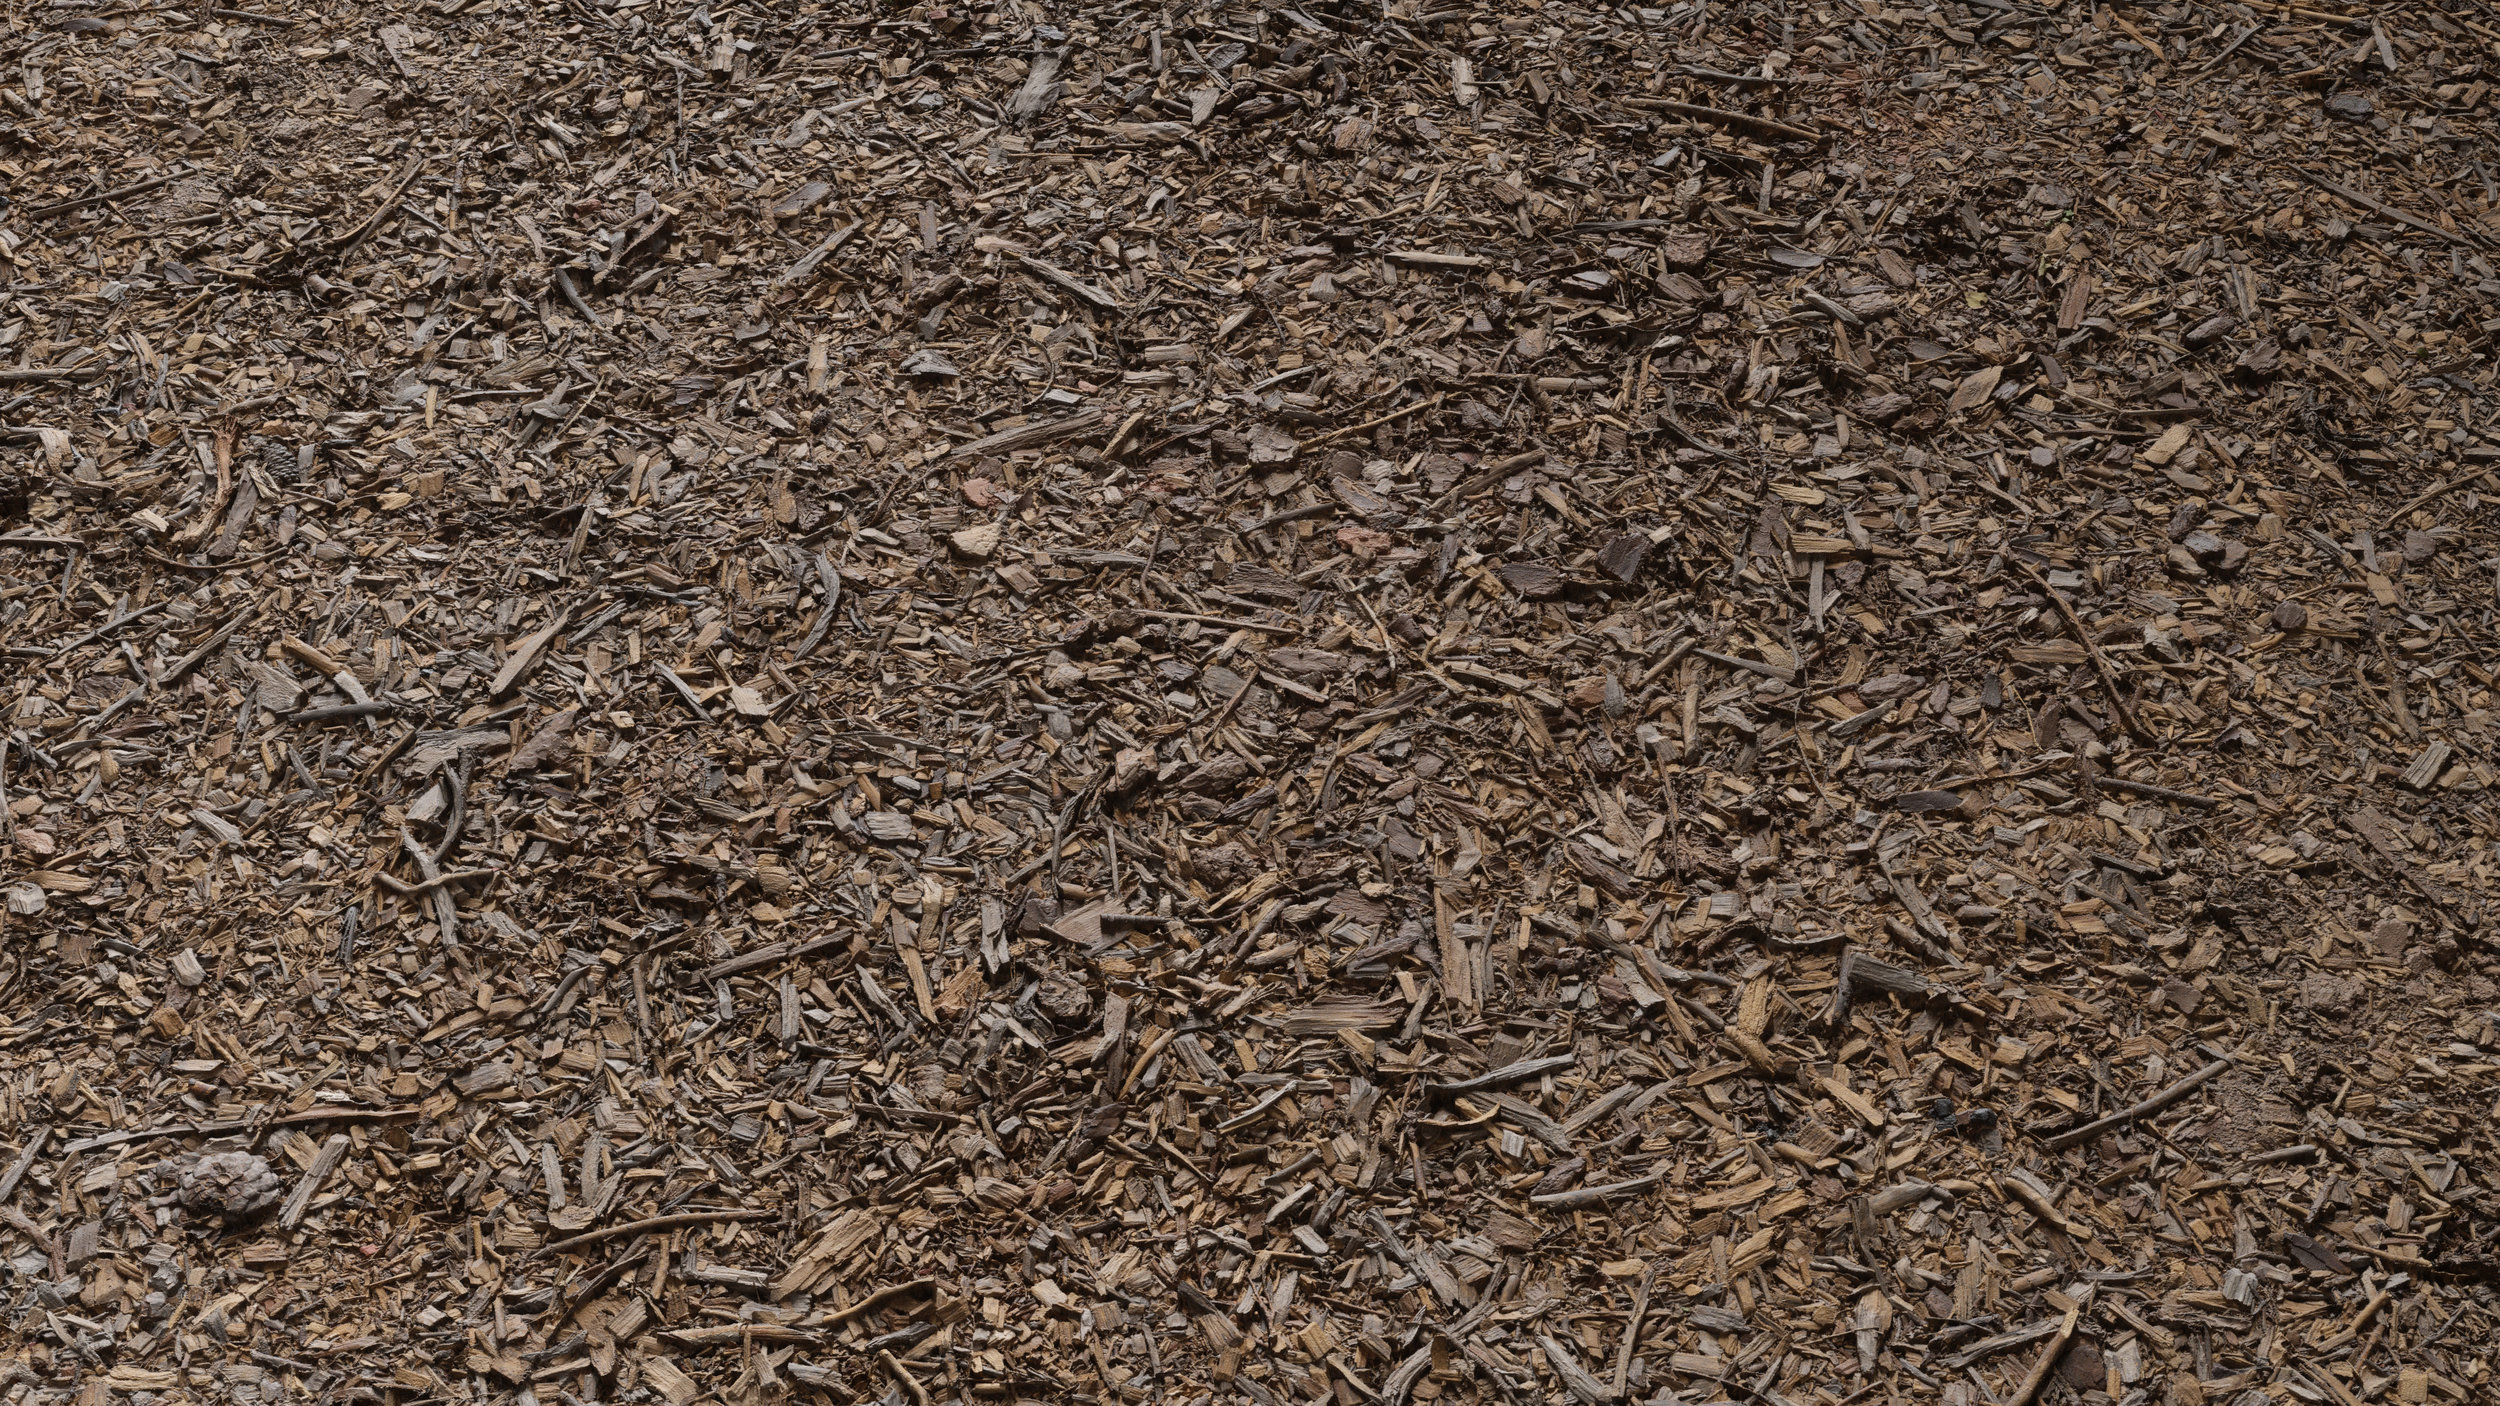 TexturesCom_Bark_Debris_Ground_header.jpg